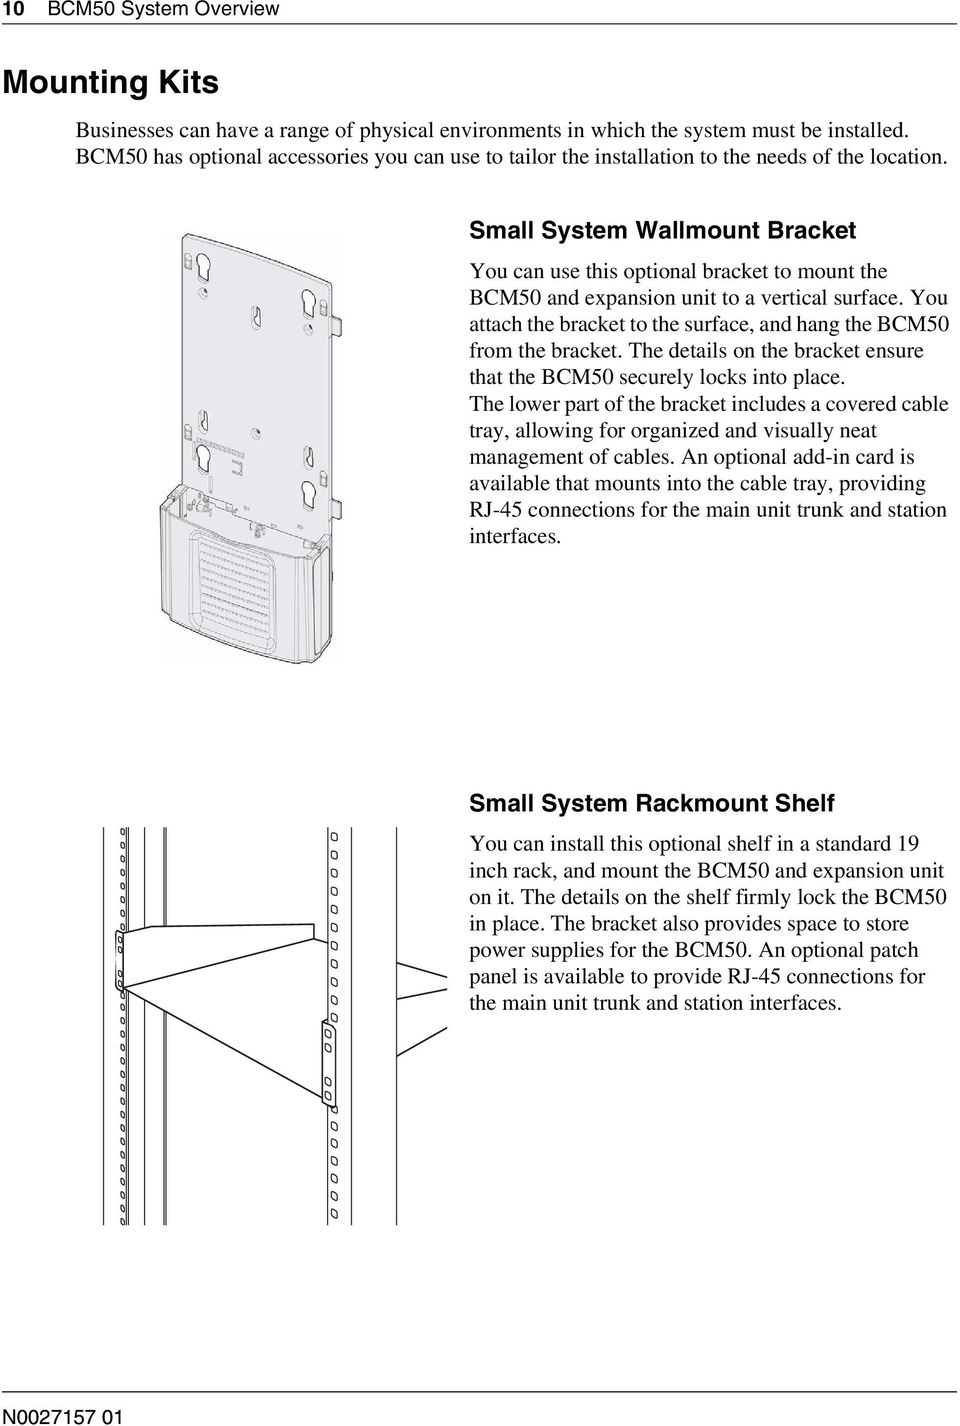 Small System Wallmount Bracket You can use this optional bracket to mount the BCM50 and expansion unit to a vertical surface.